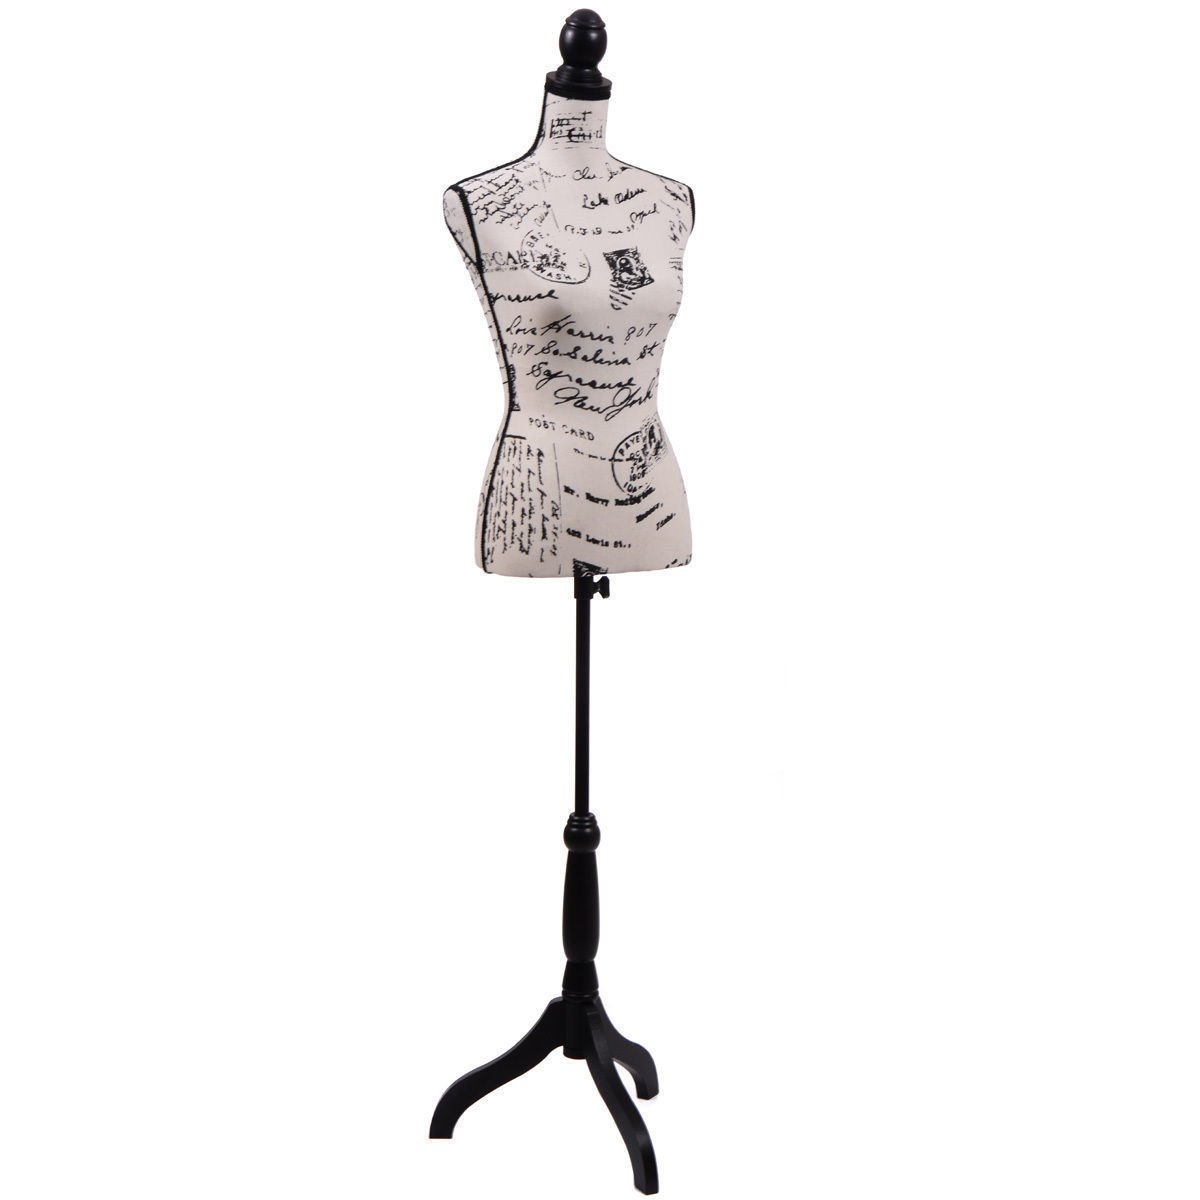 JAXPETY Female Mannequin Torso Clothing Display W/Black Tripod Stand New Beige (Beige)